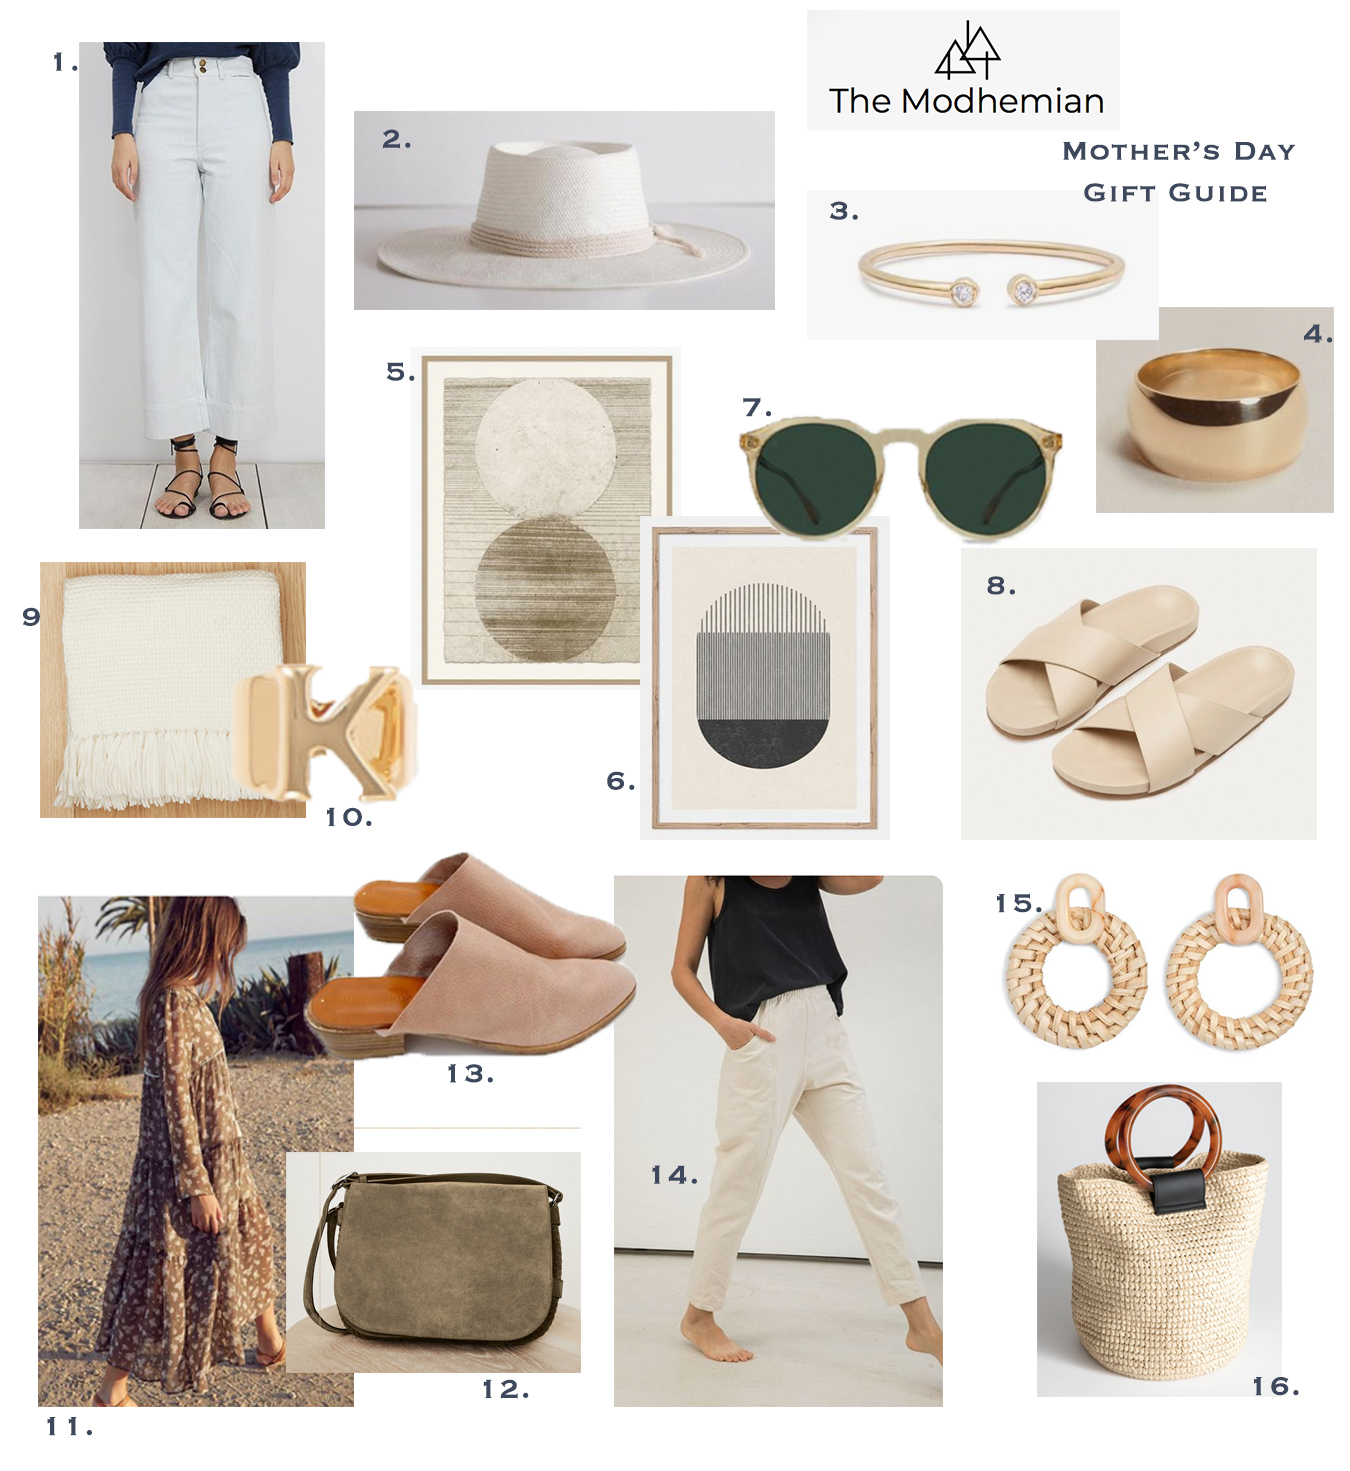 Modhemian Mothers Day Gift Guide.jpg